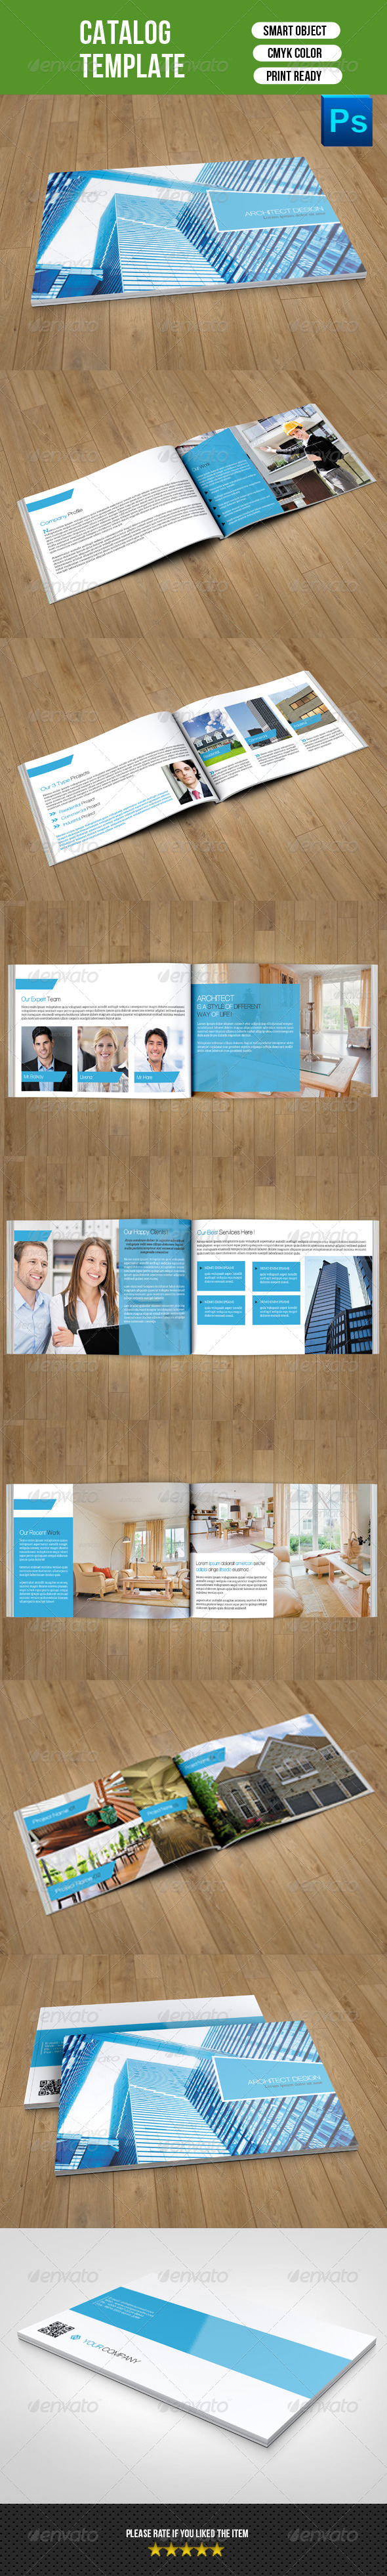 GraphicRiver Architecture Catalog-V04 7842652